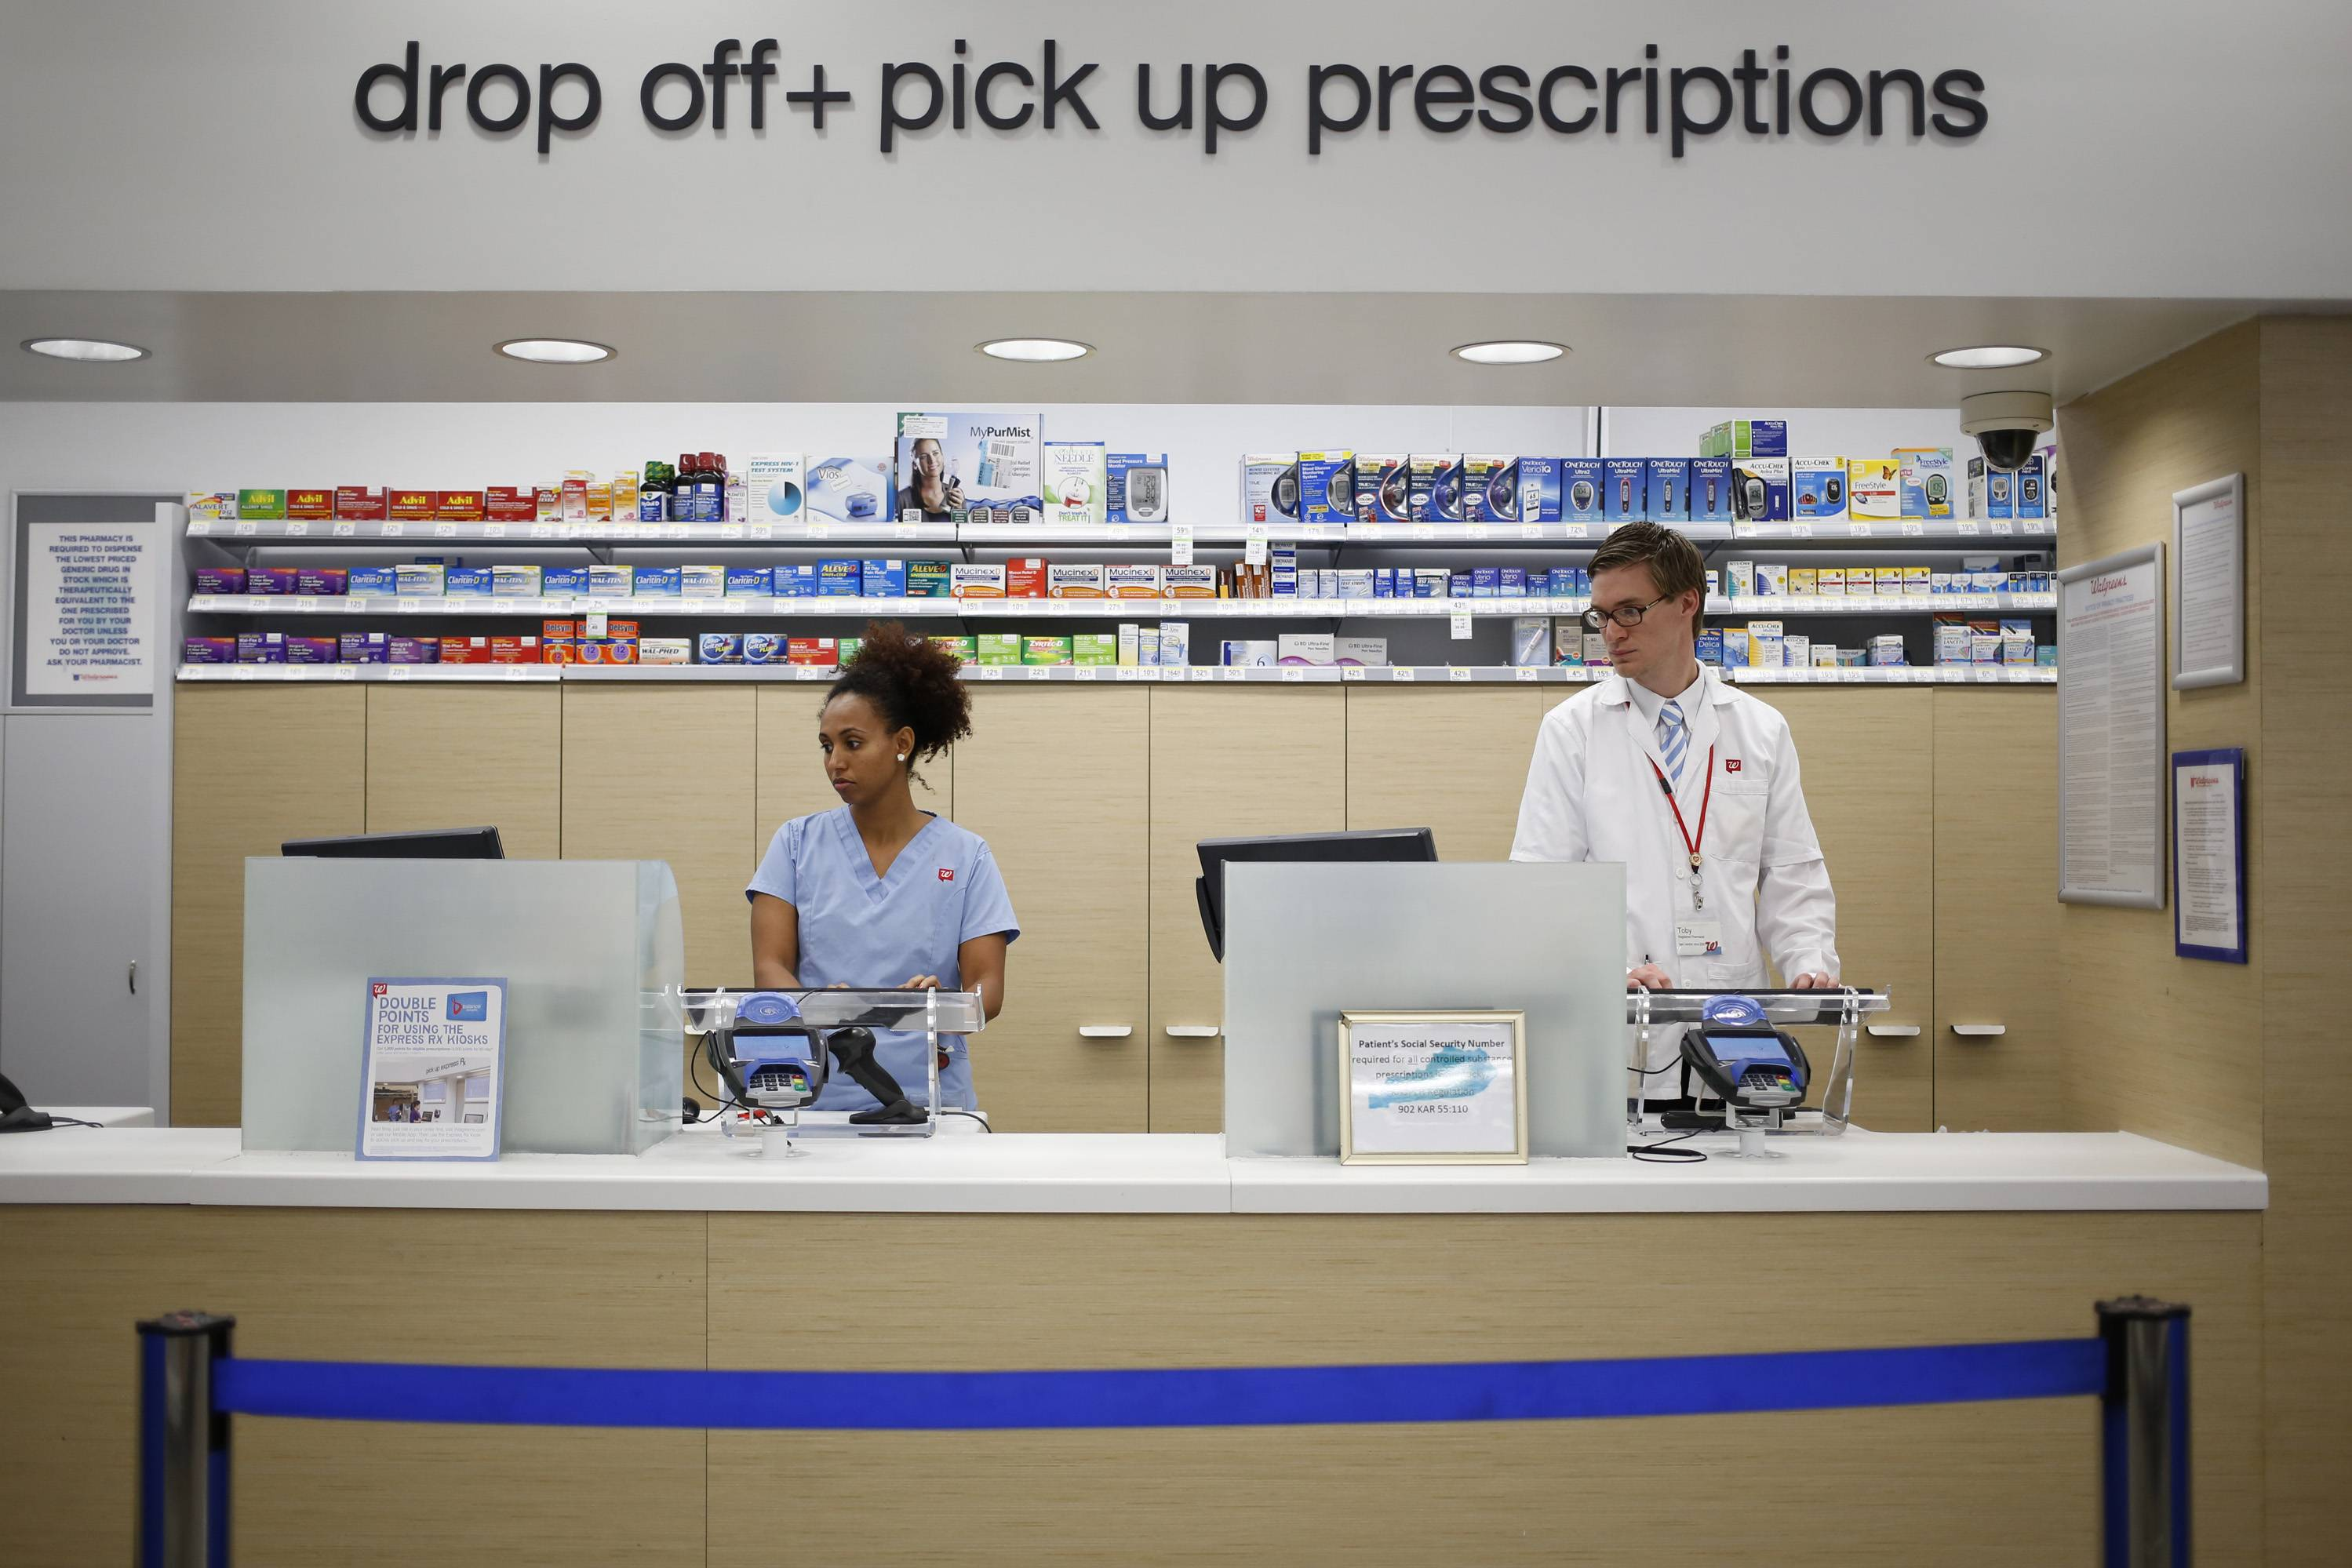 Deerfield-based Walgreen said Thursday that it is selling a majority stake in its worksite health center business to the private equity firm Water Street Healthcare Partners.